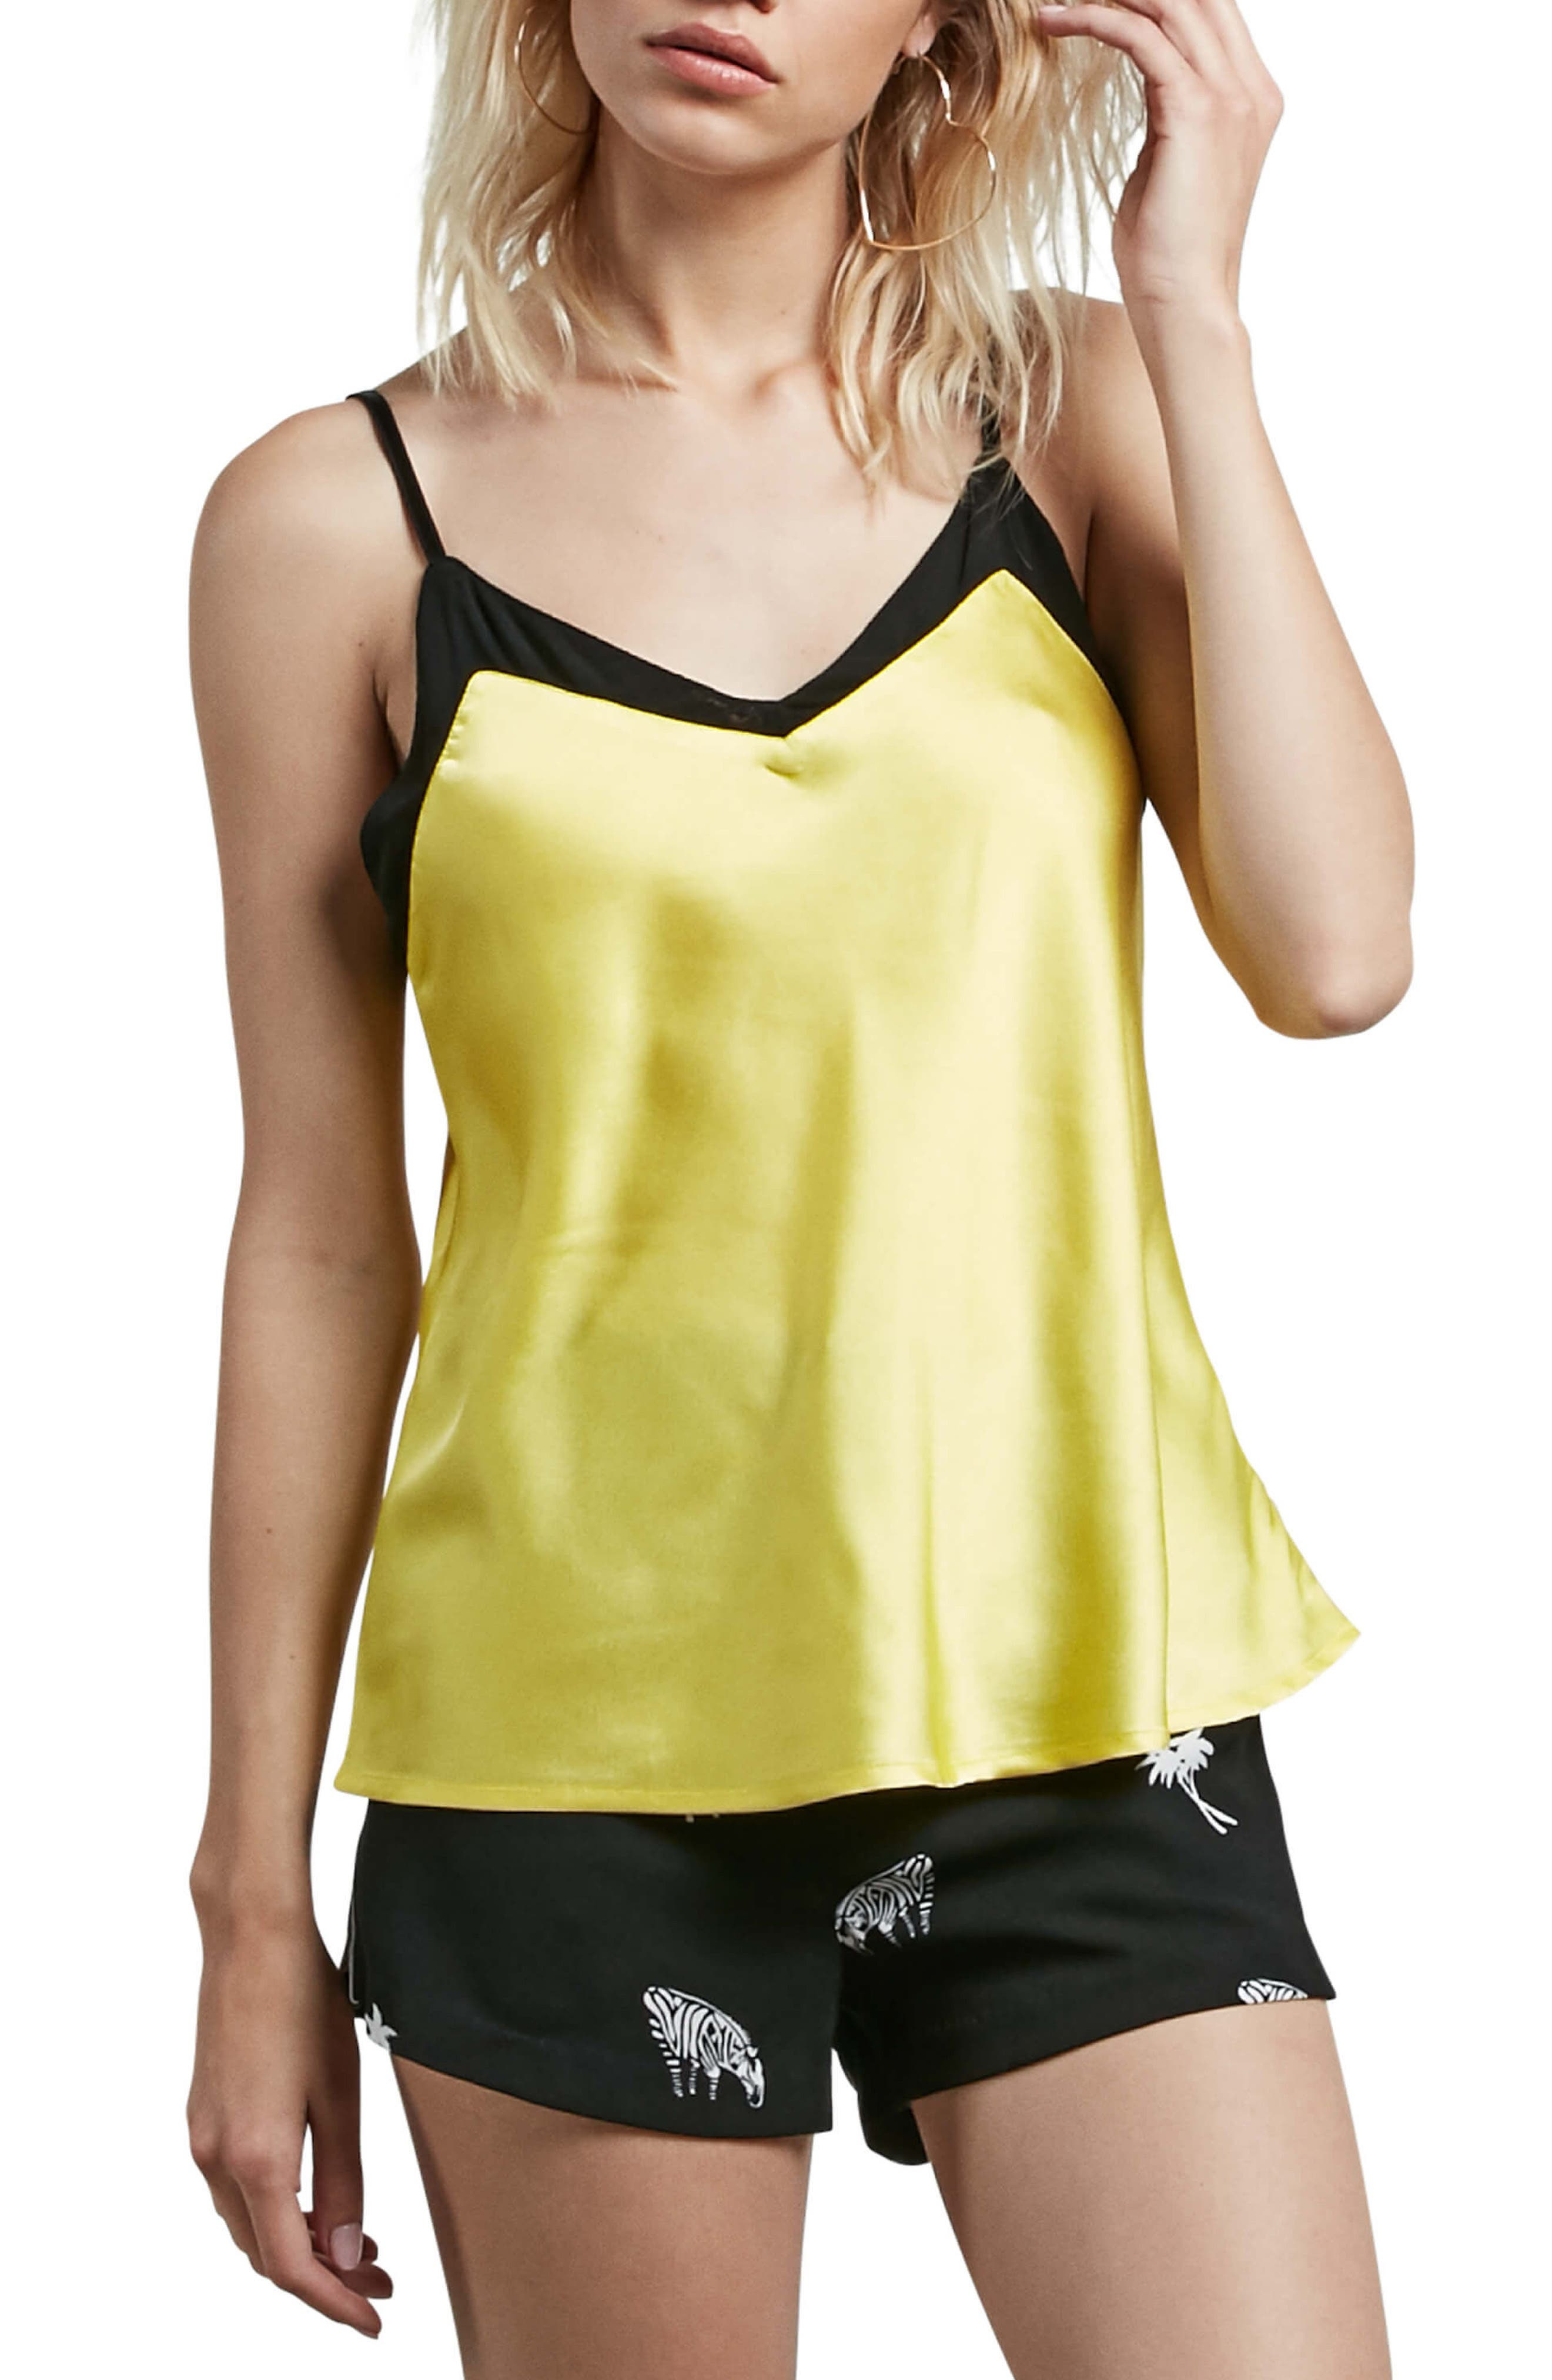 It's Happening Satin Camisole,                             Main thumbnail 1, color,                             734